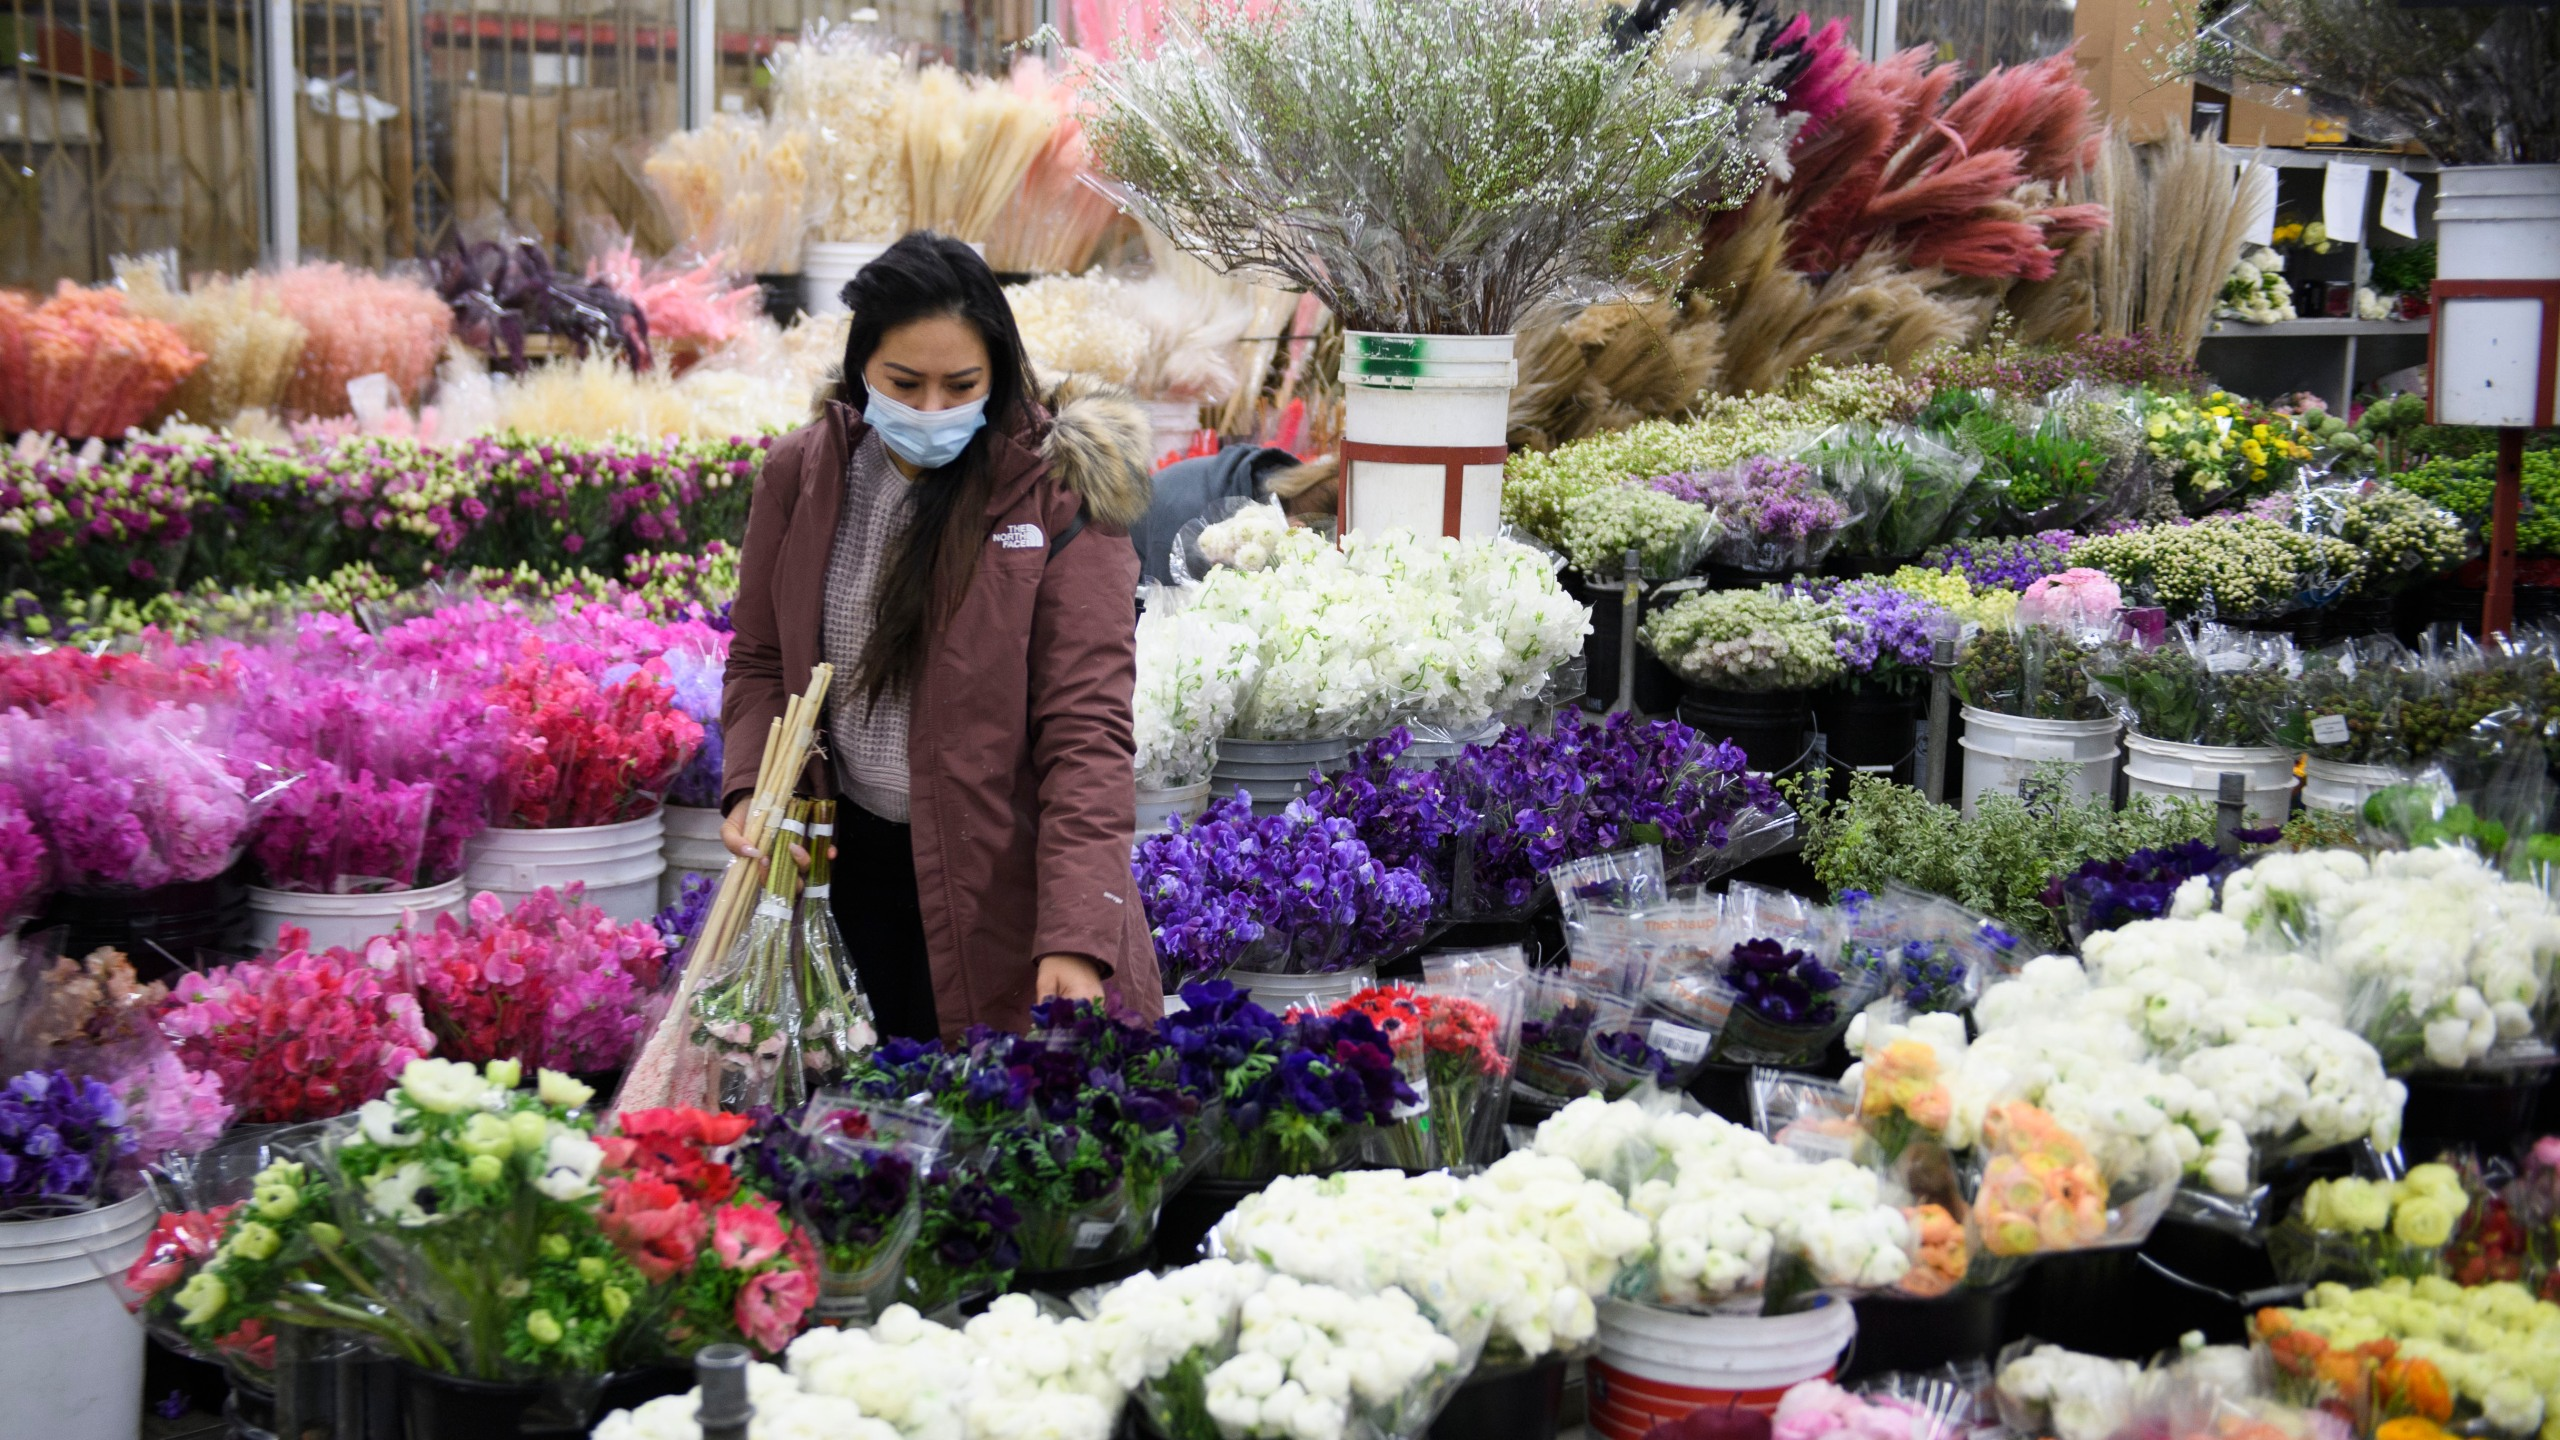 A customer wears a face mask while shopping for flowers displayed for sale from a wholesale merchant ahead of the Valentine's Day holiday at the Southern California Flower Market on Feb. 12, 2021 in Los Angeles. (PATRICK T. FALLON/AFP via Getty Images)